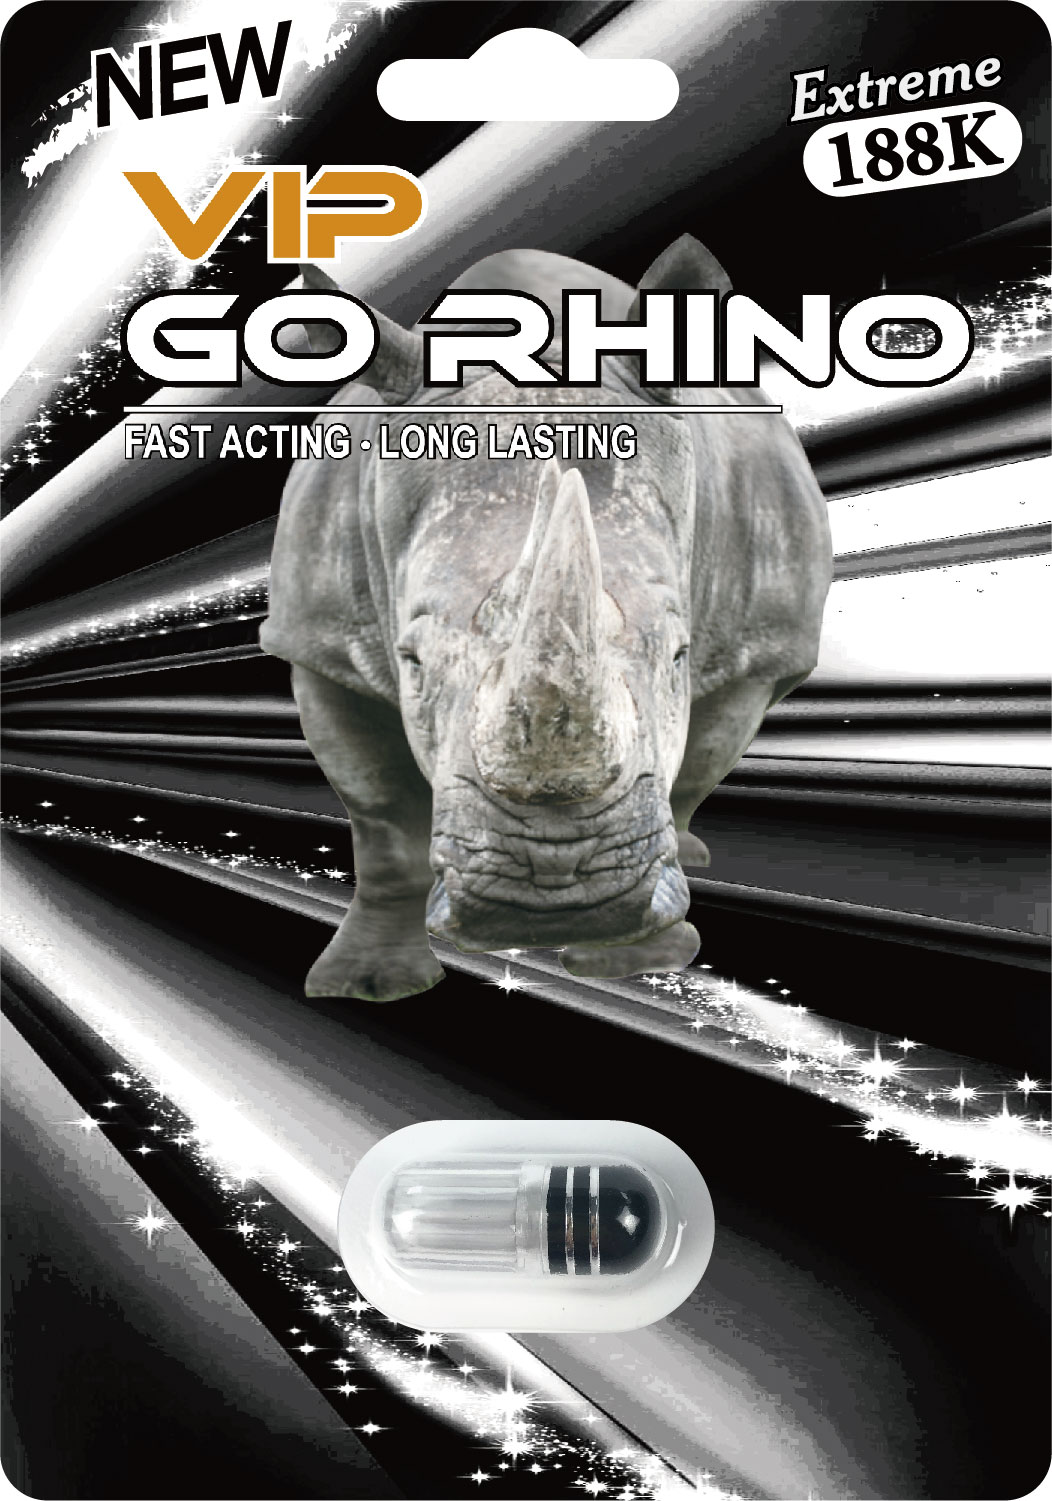 Go Rhino New VIP Extreme 188K Male Enhancement Pill